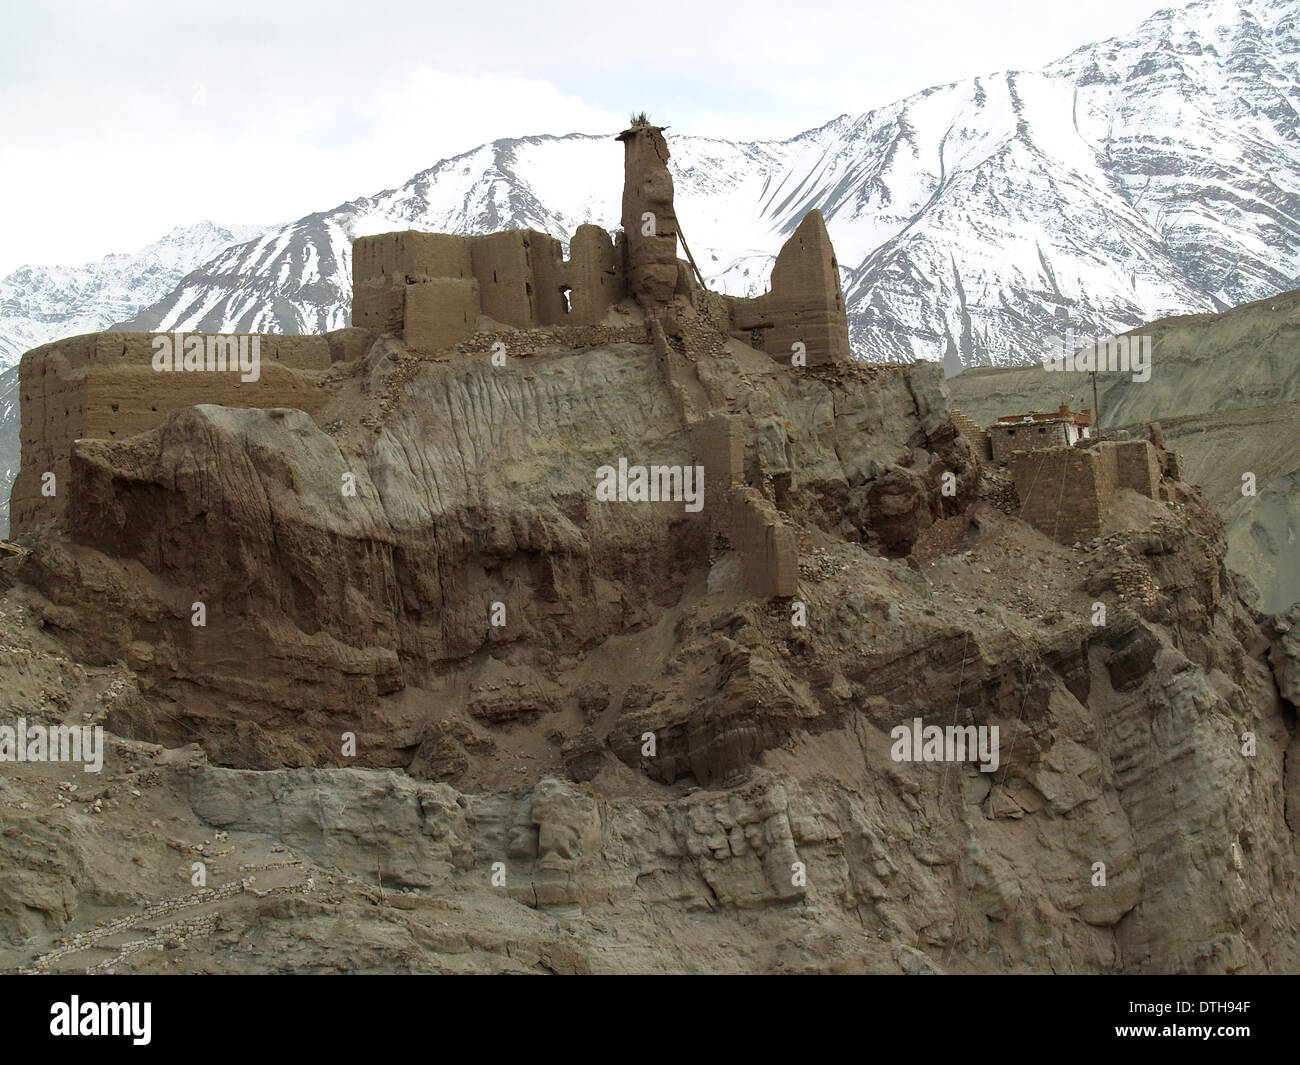 The Basgo Citadel sits framed by the Himalayan Mountains,Ladakh,India - Stock Image